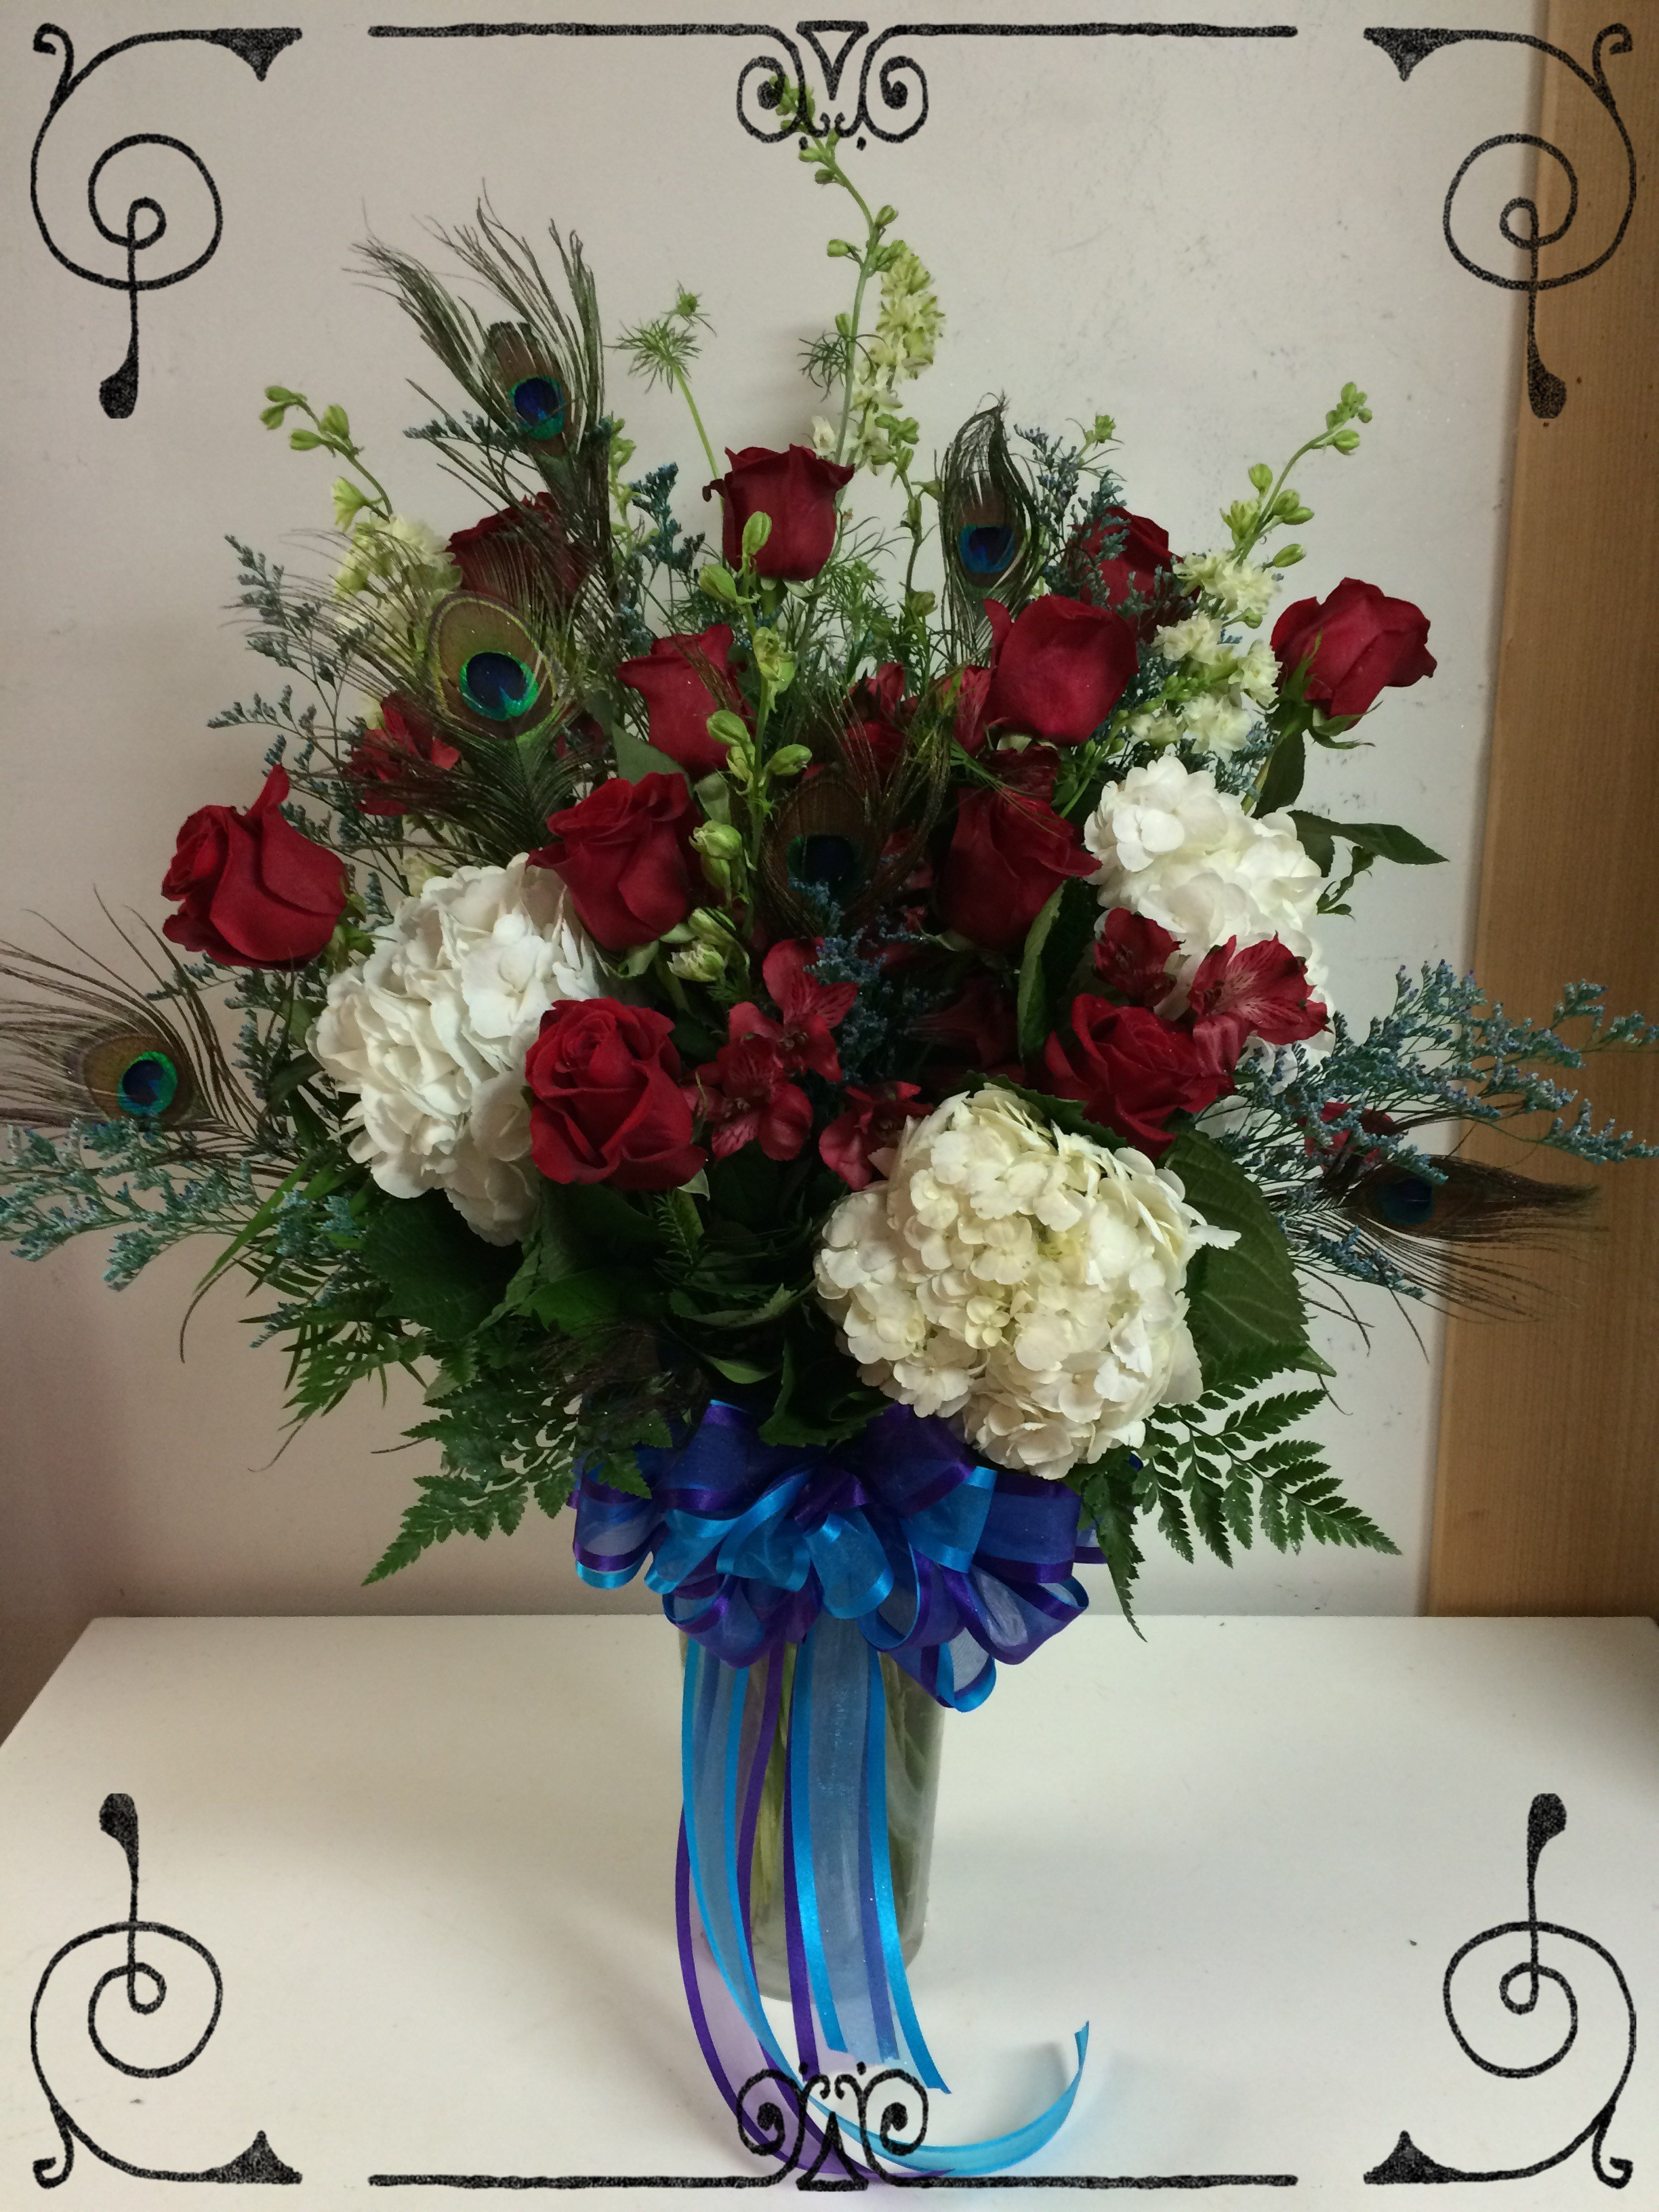 bud vase floral arrangements of anniversary flowers delivery elk city broadway flowers pertaining to peacock roses hydrangeas